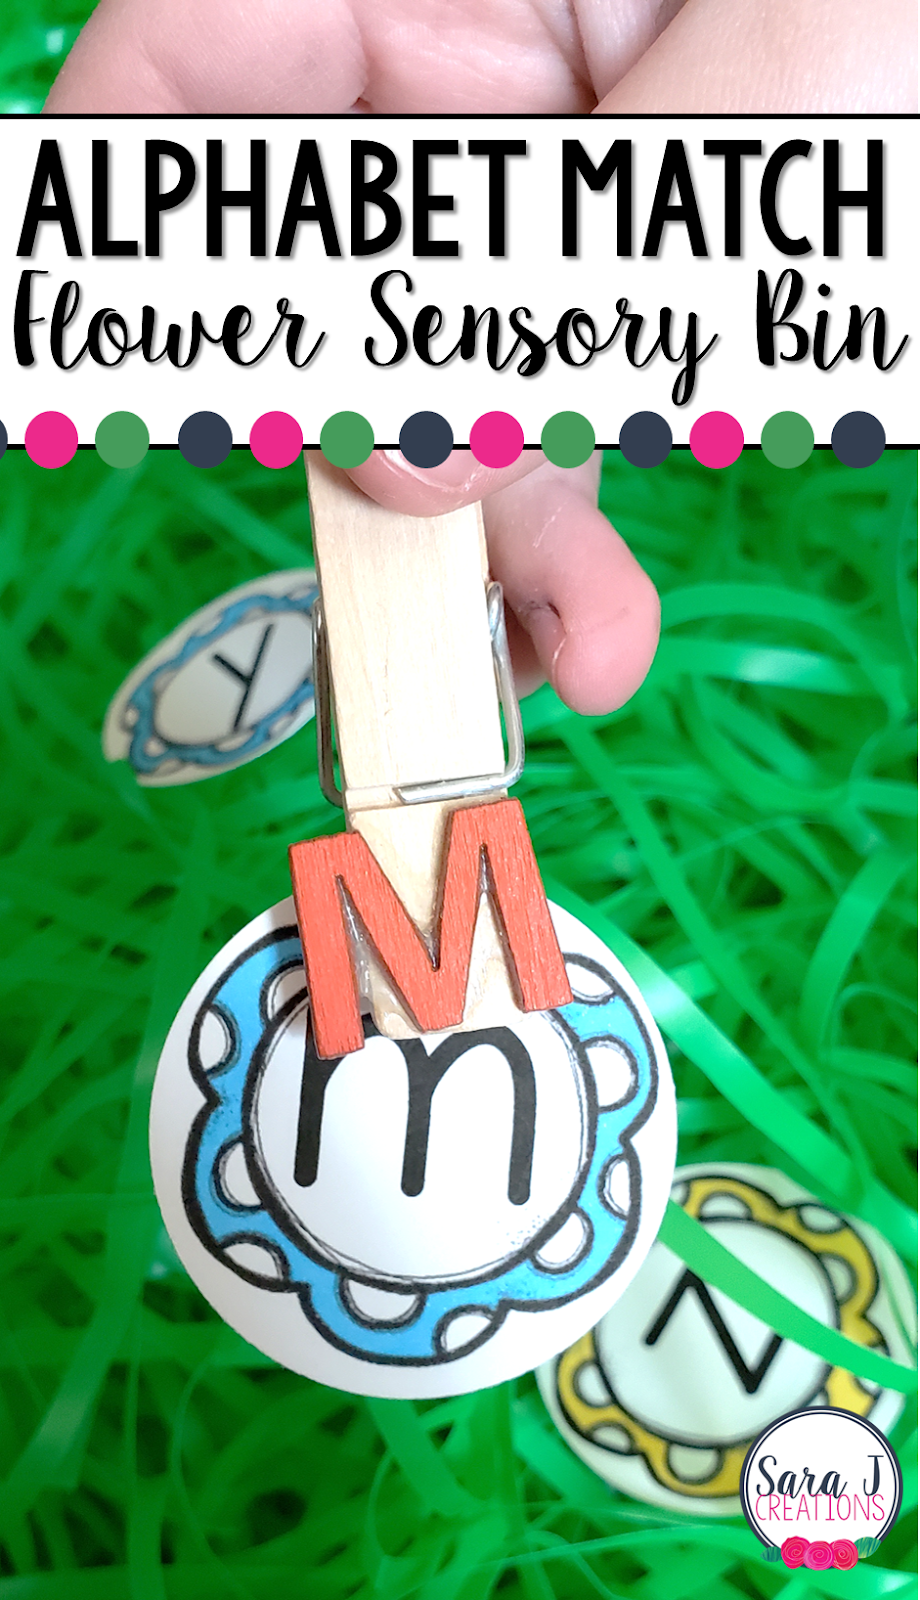 Alphabet match flower sensory bin